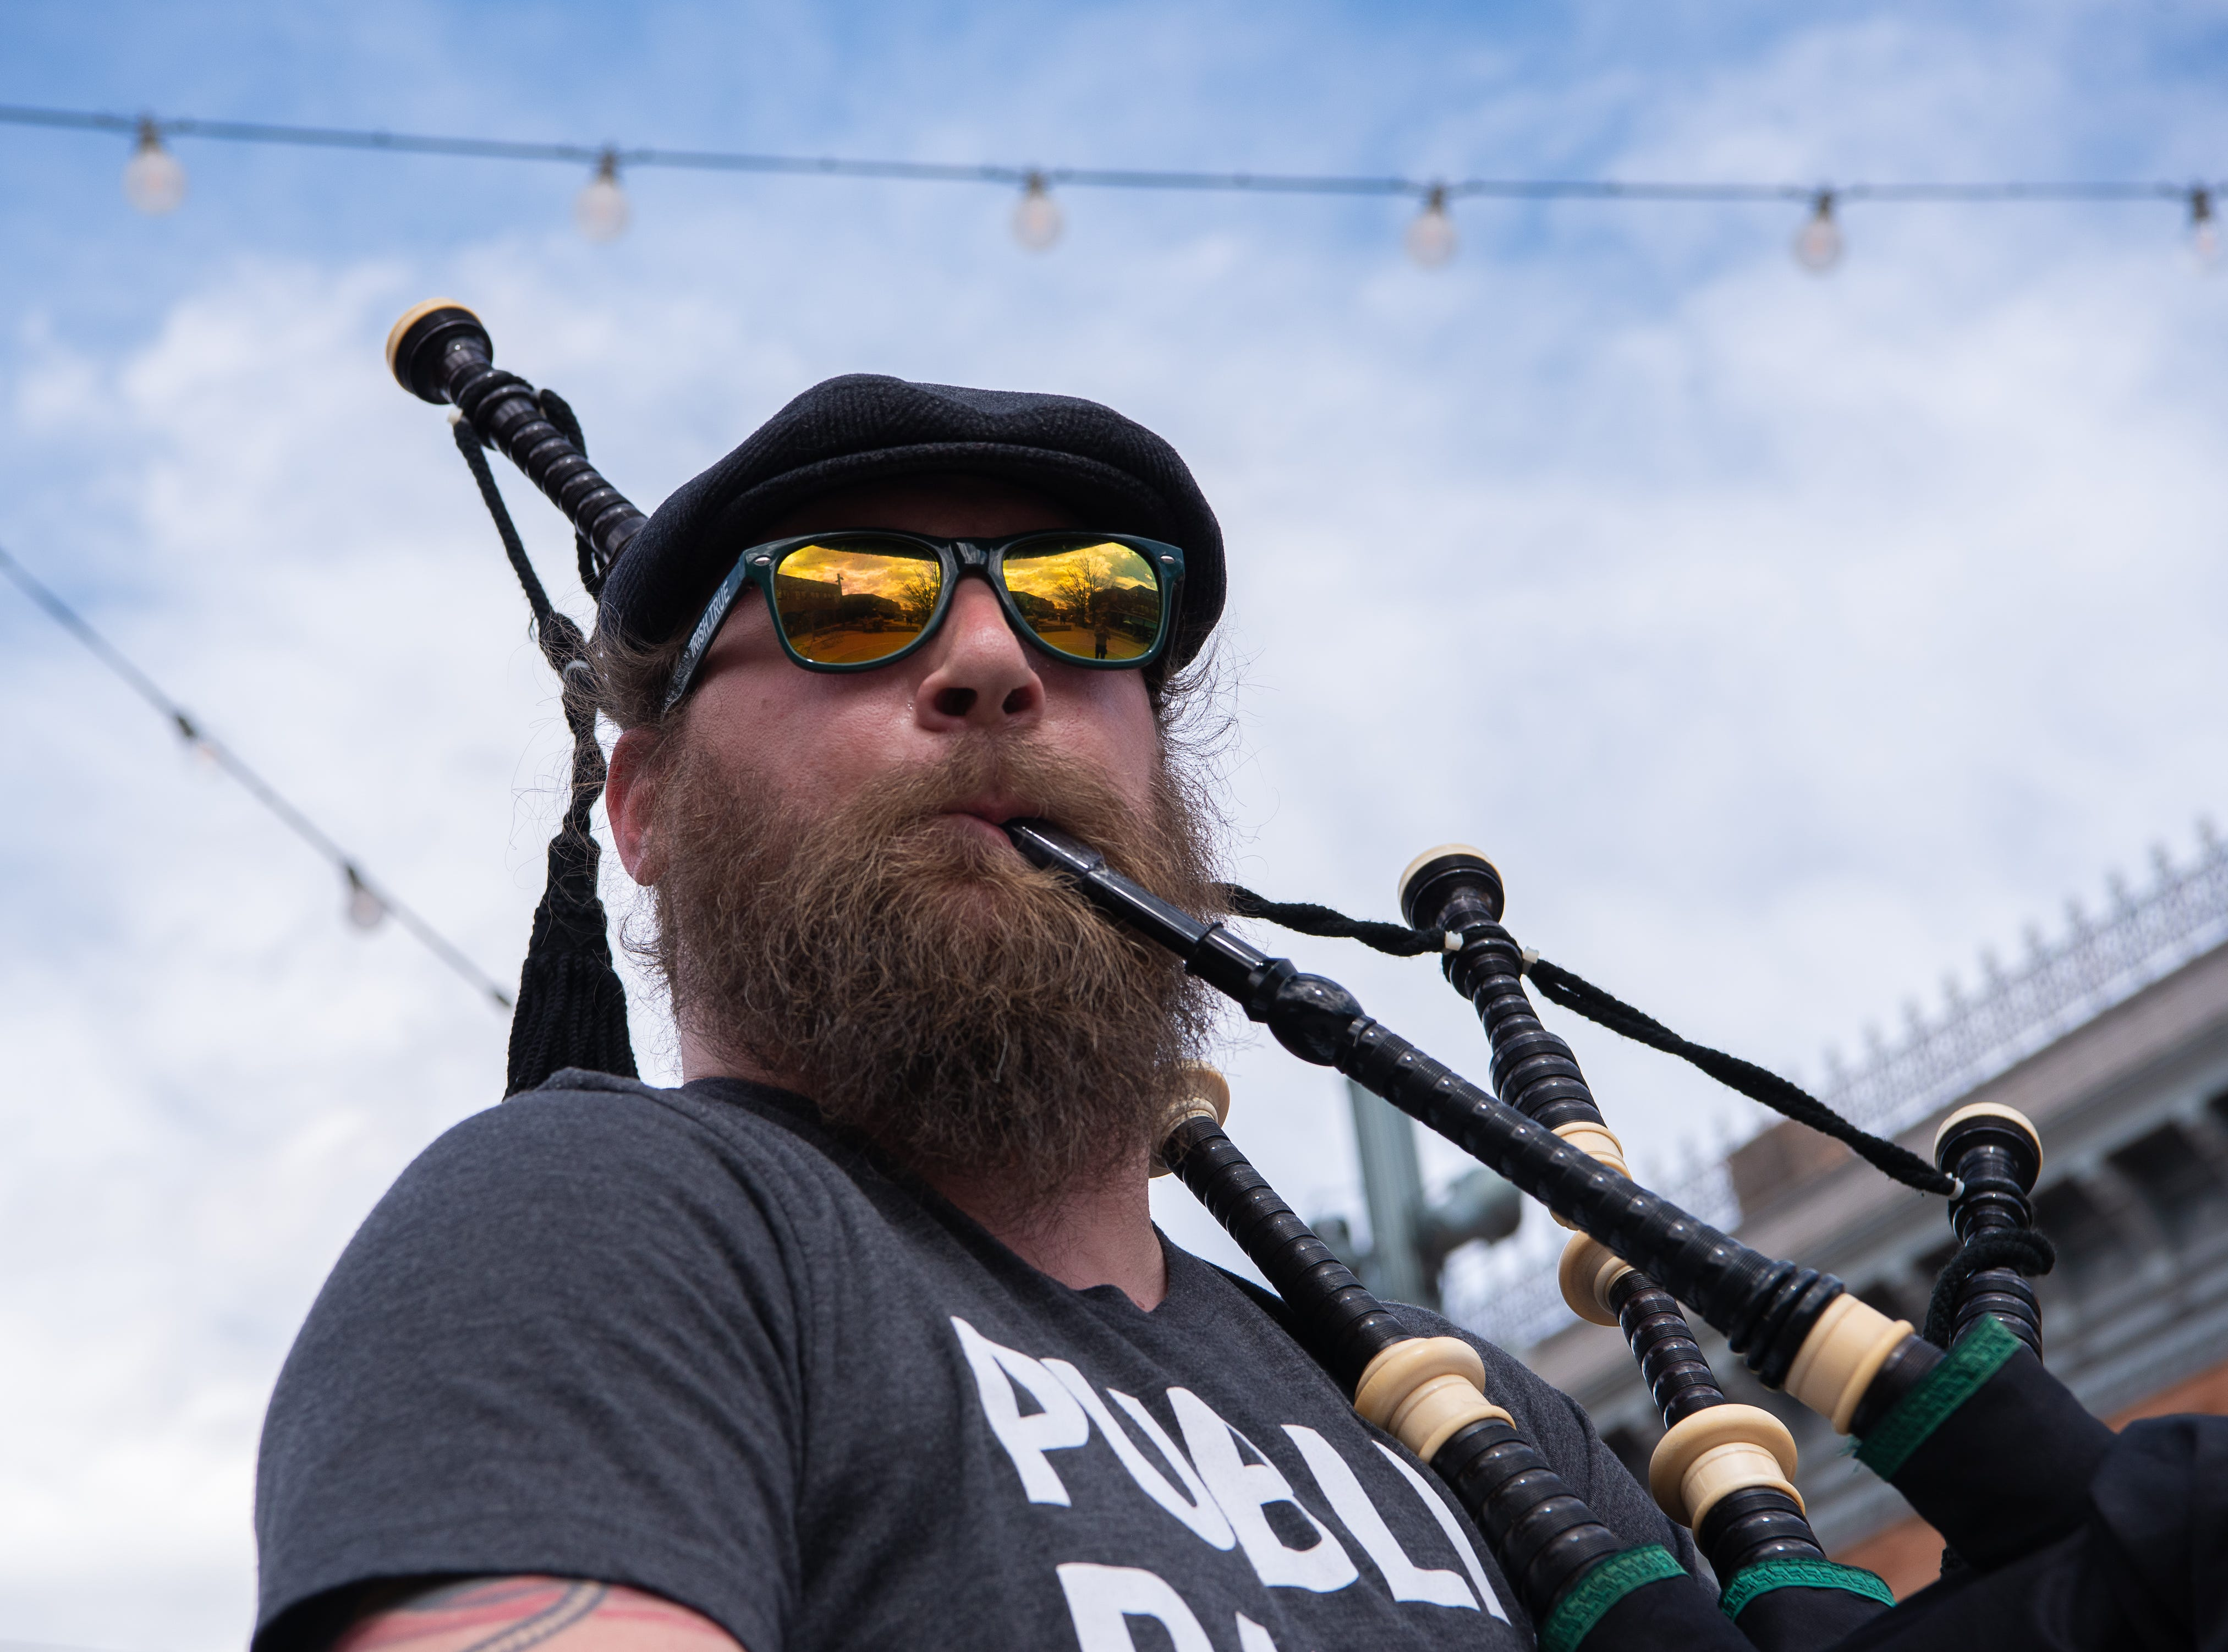 Desmond O'Boyle plays the Great Highland bagpipe  for the kickoff of the FoCoMX XI music festival in Old Town Square on Friday, April 26, 2019, in Fort Collins, Colo.